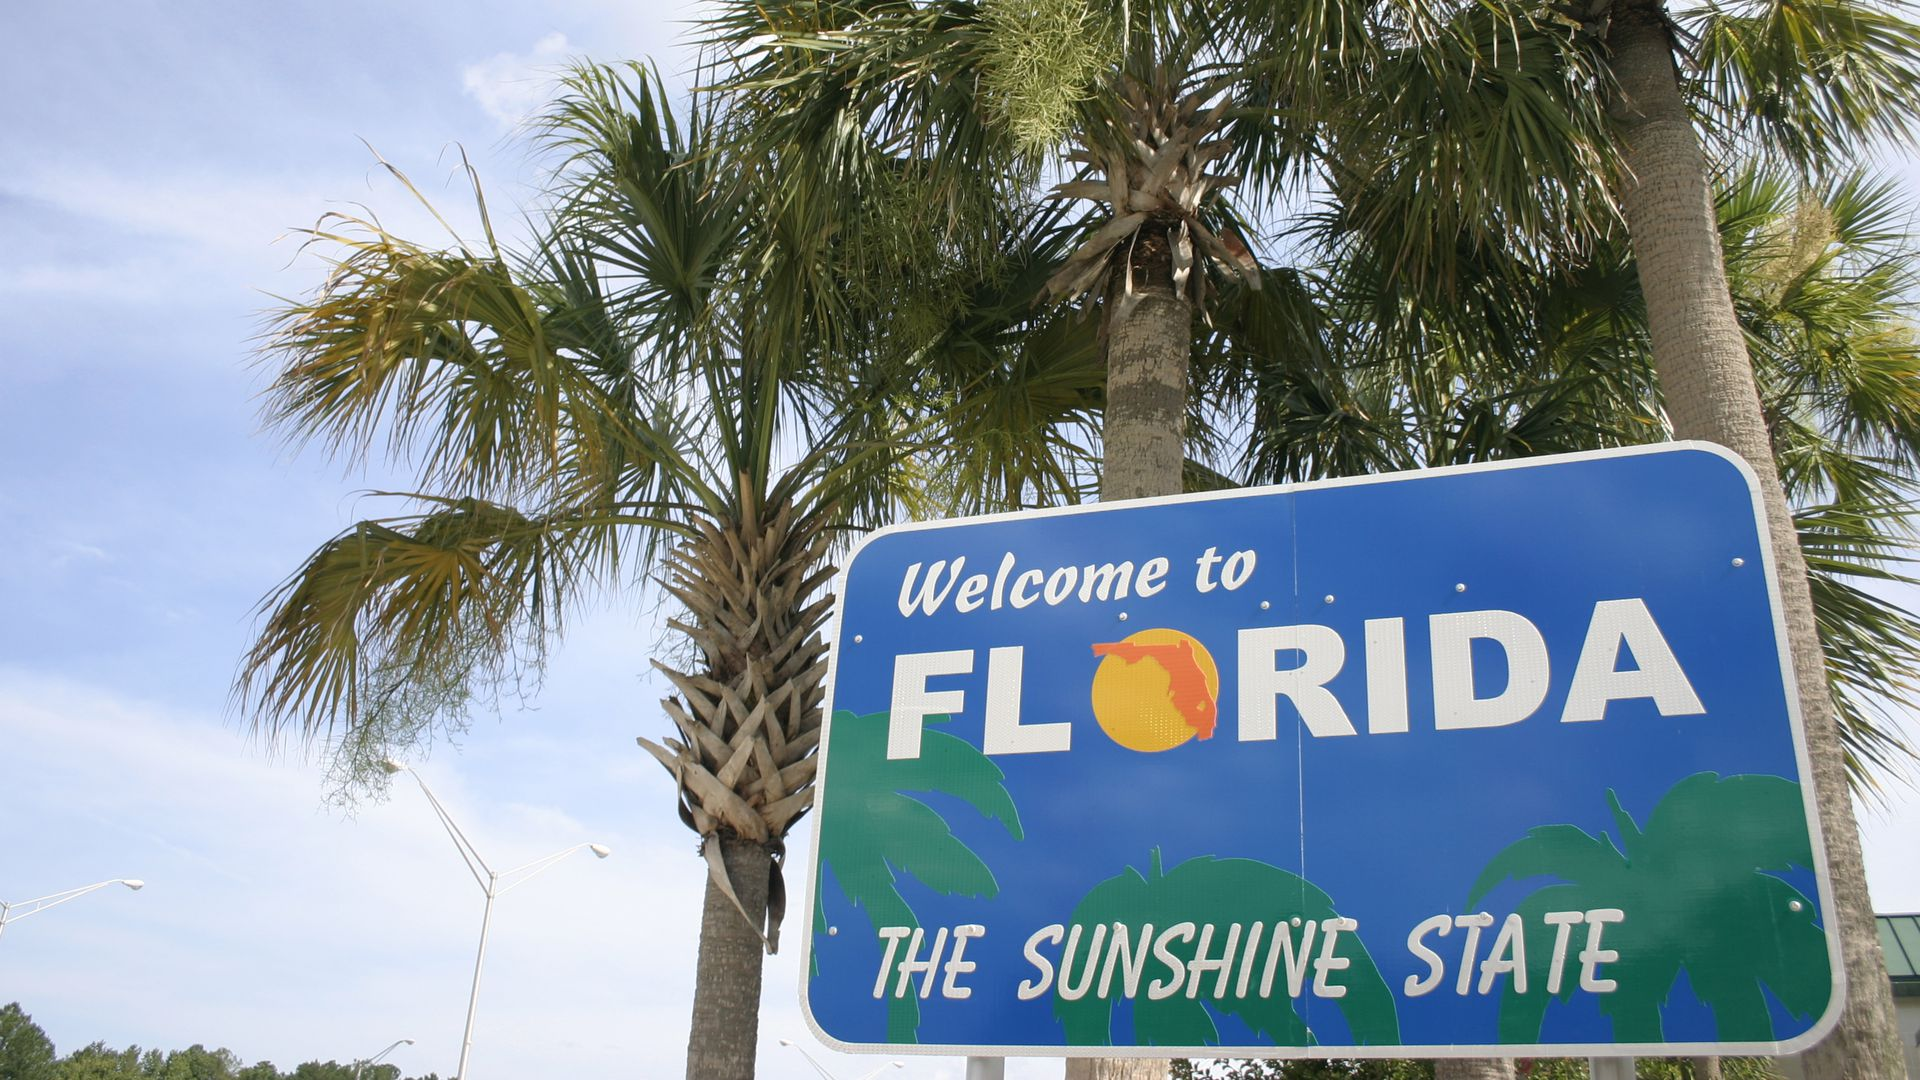 Welcome to Florida sign in front of palm trees